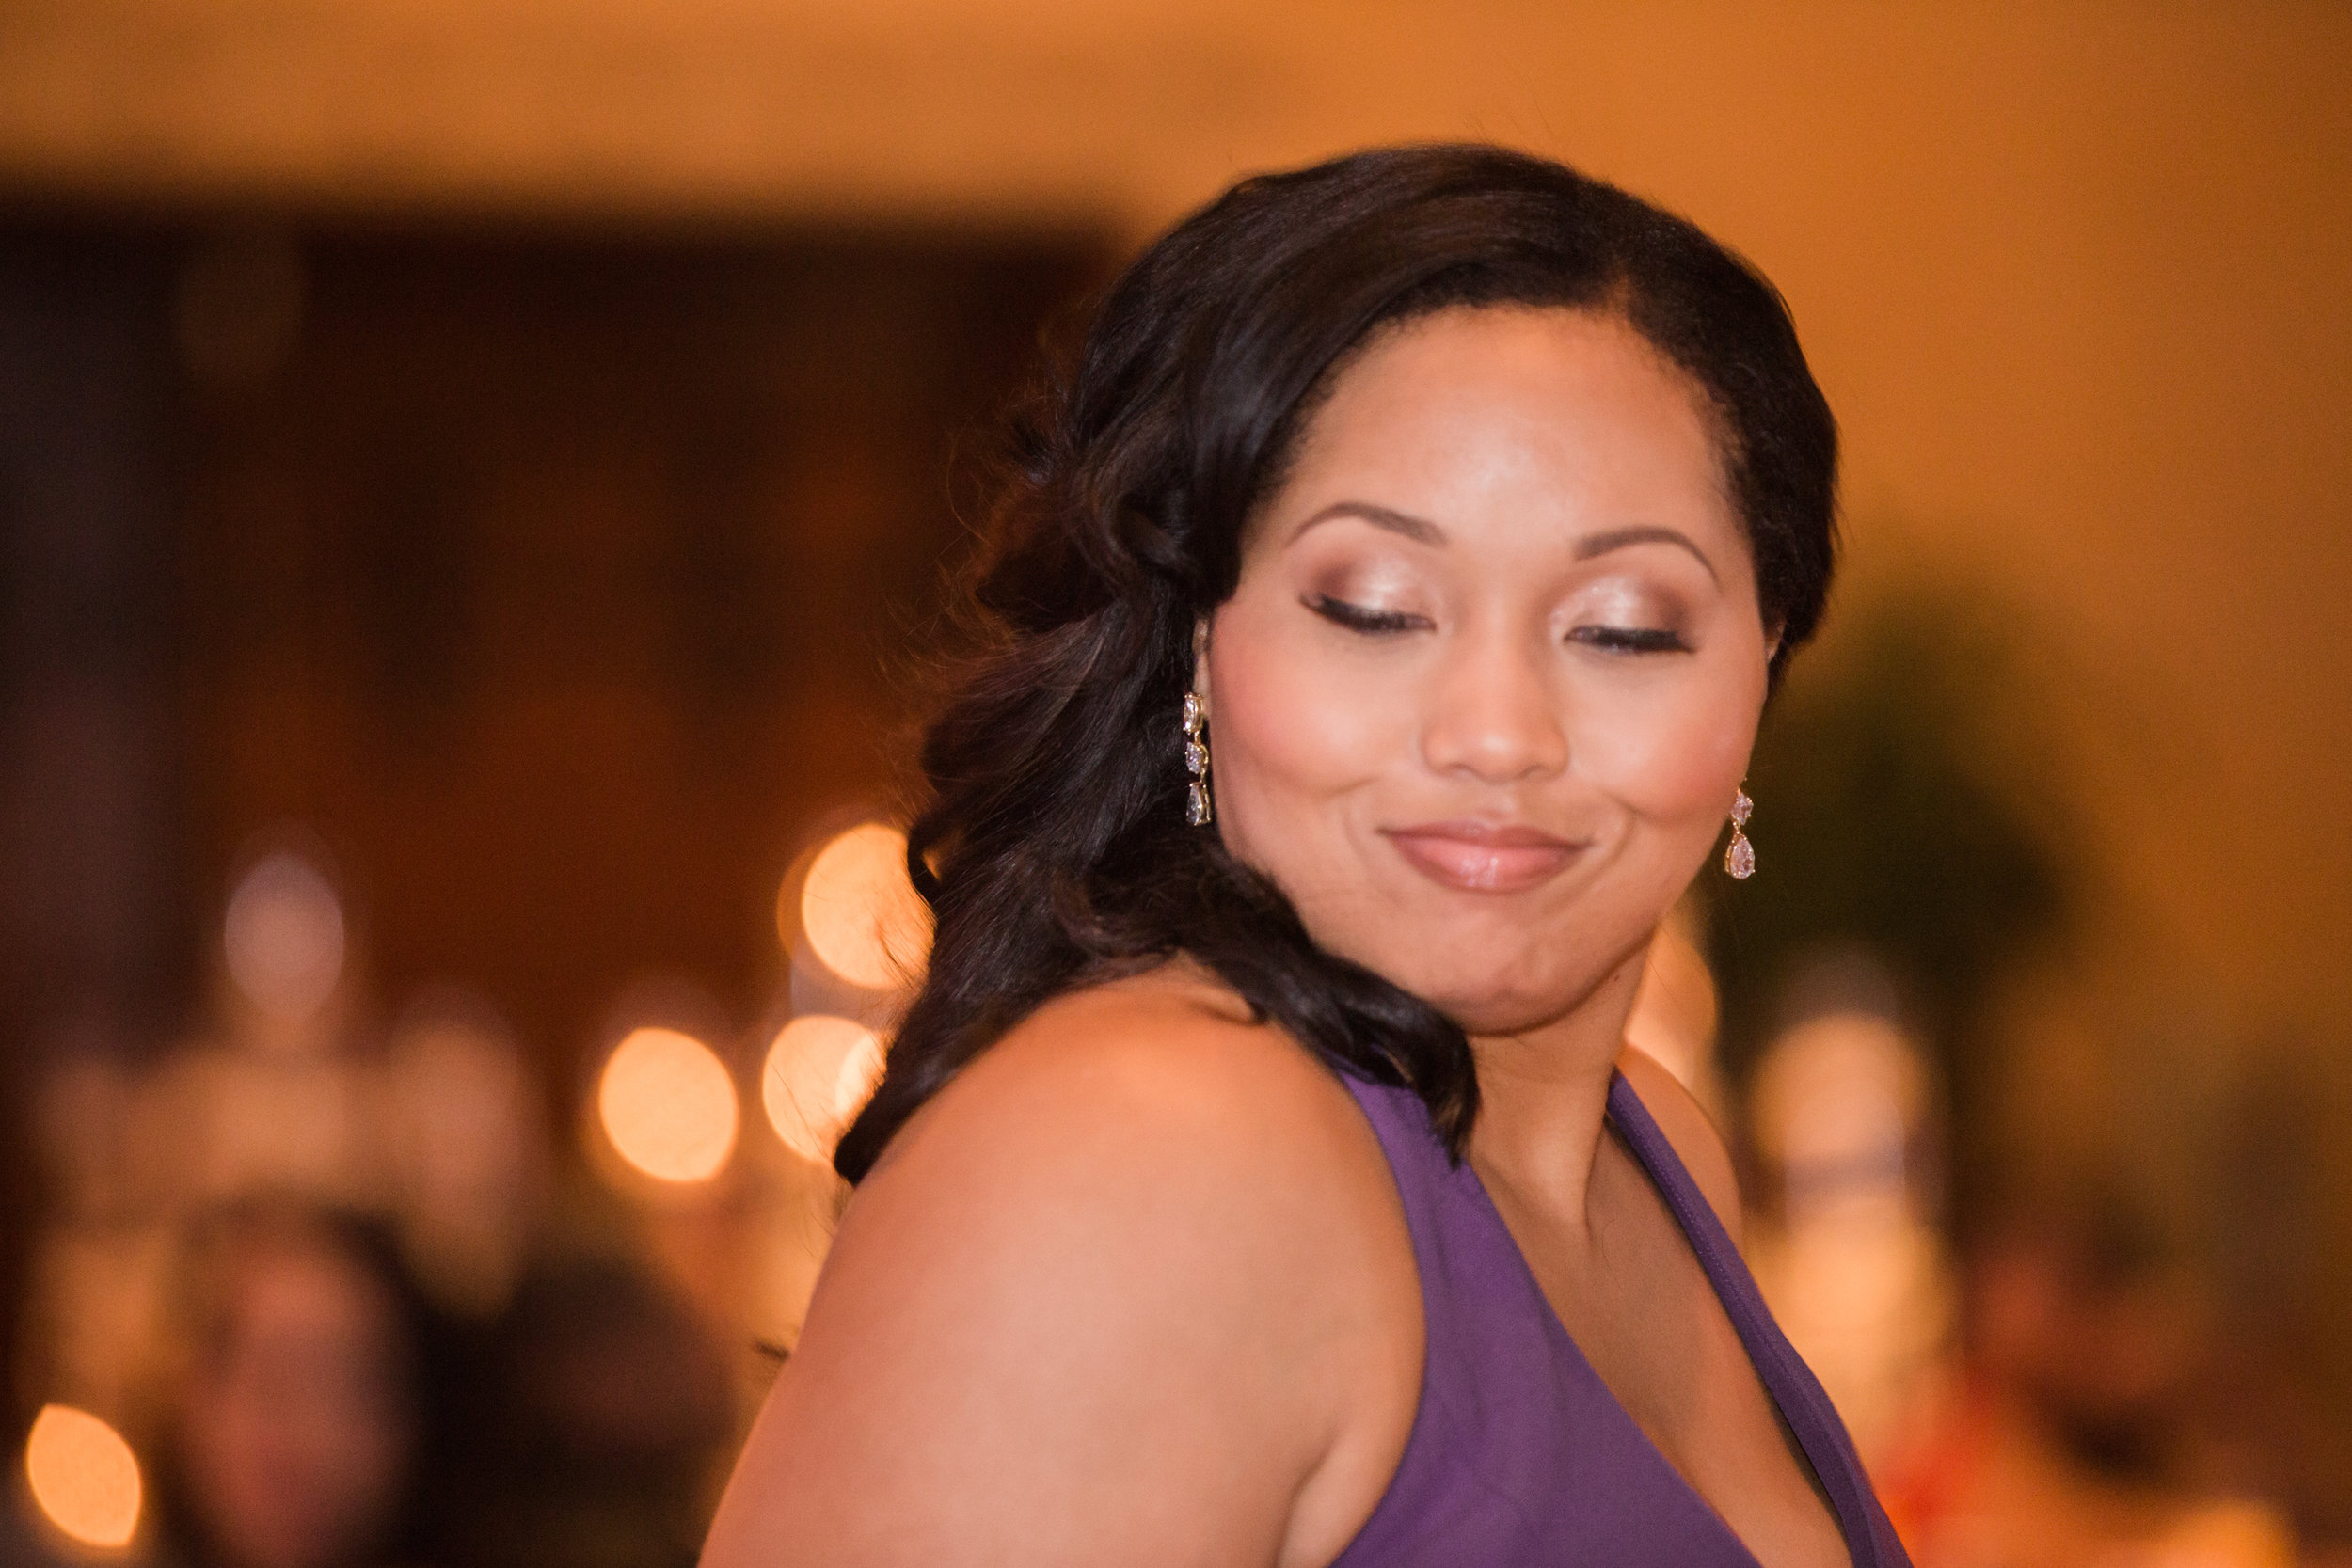 Best Classic Black Bride at The Grand Baltimore Maryland Husband and Wife Wedding Photographers Megapixels Media (73 of 98).jpg